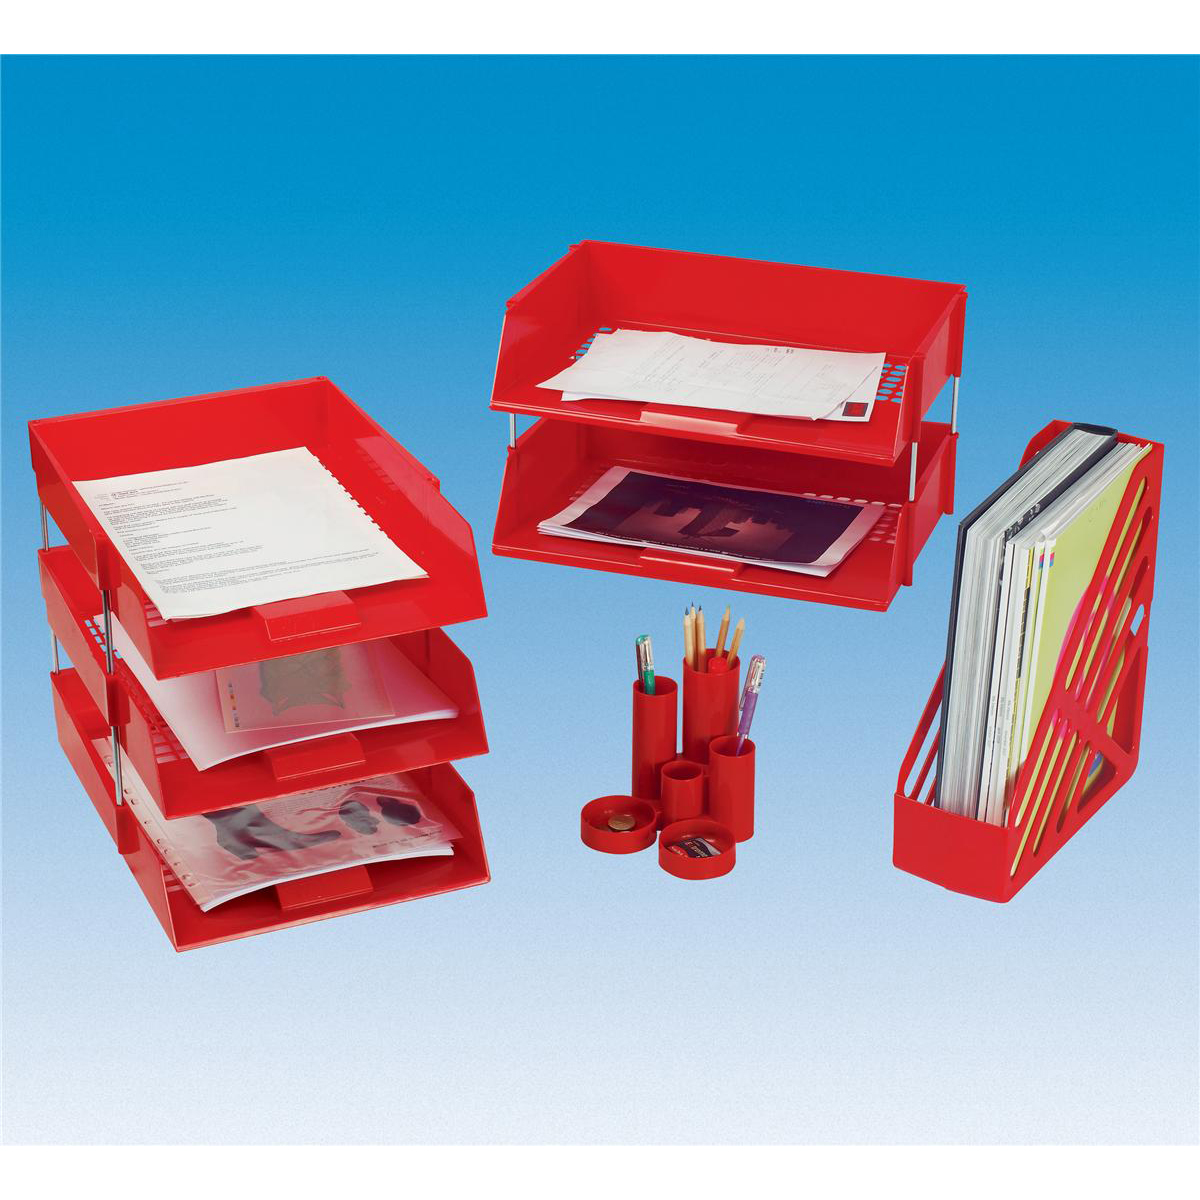 5 Star Office Letter Tray High-impact Polystyrene Foolscap Red